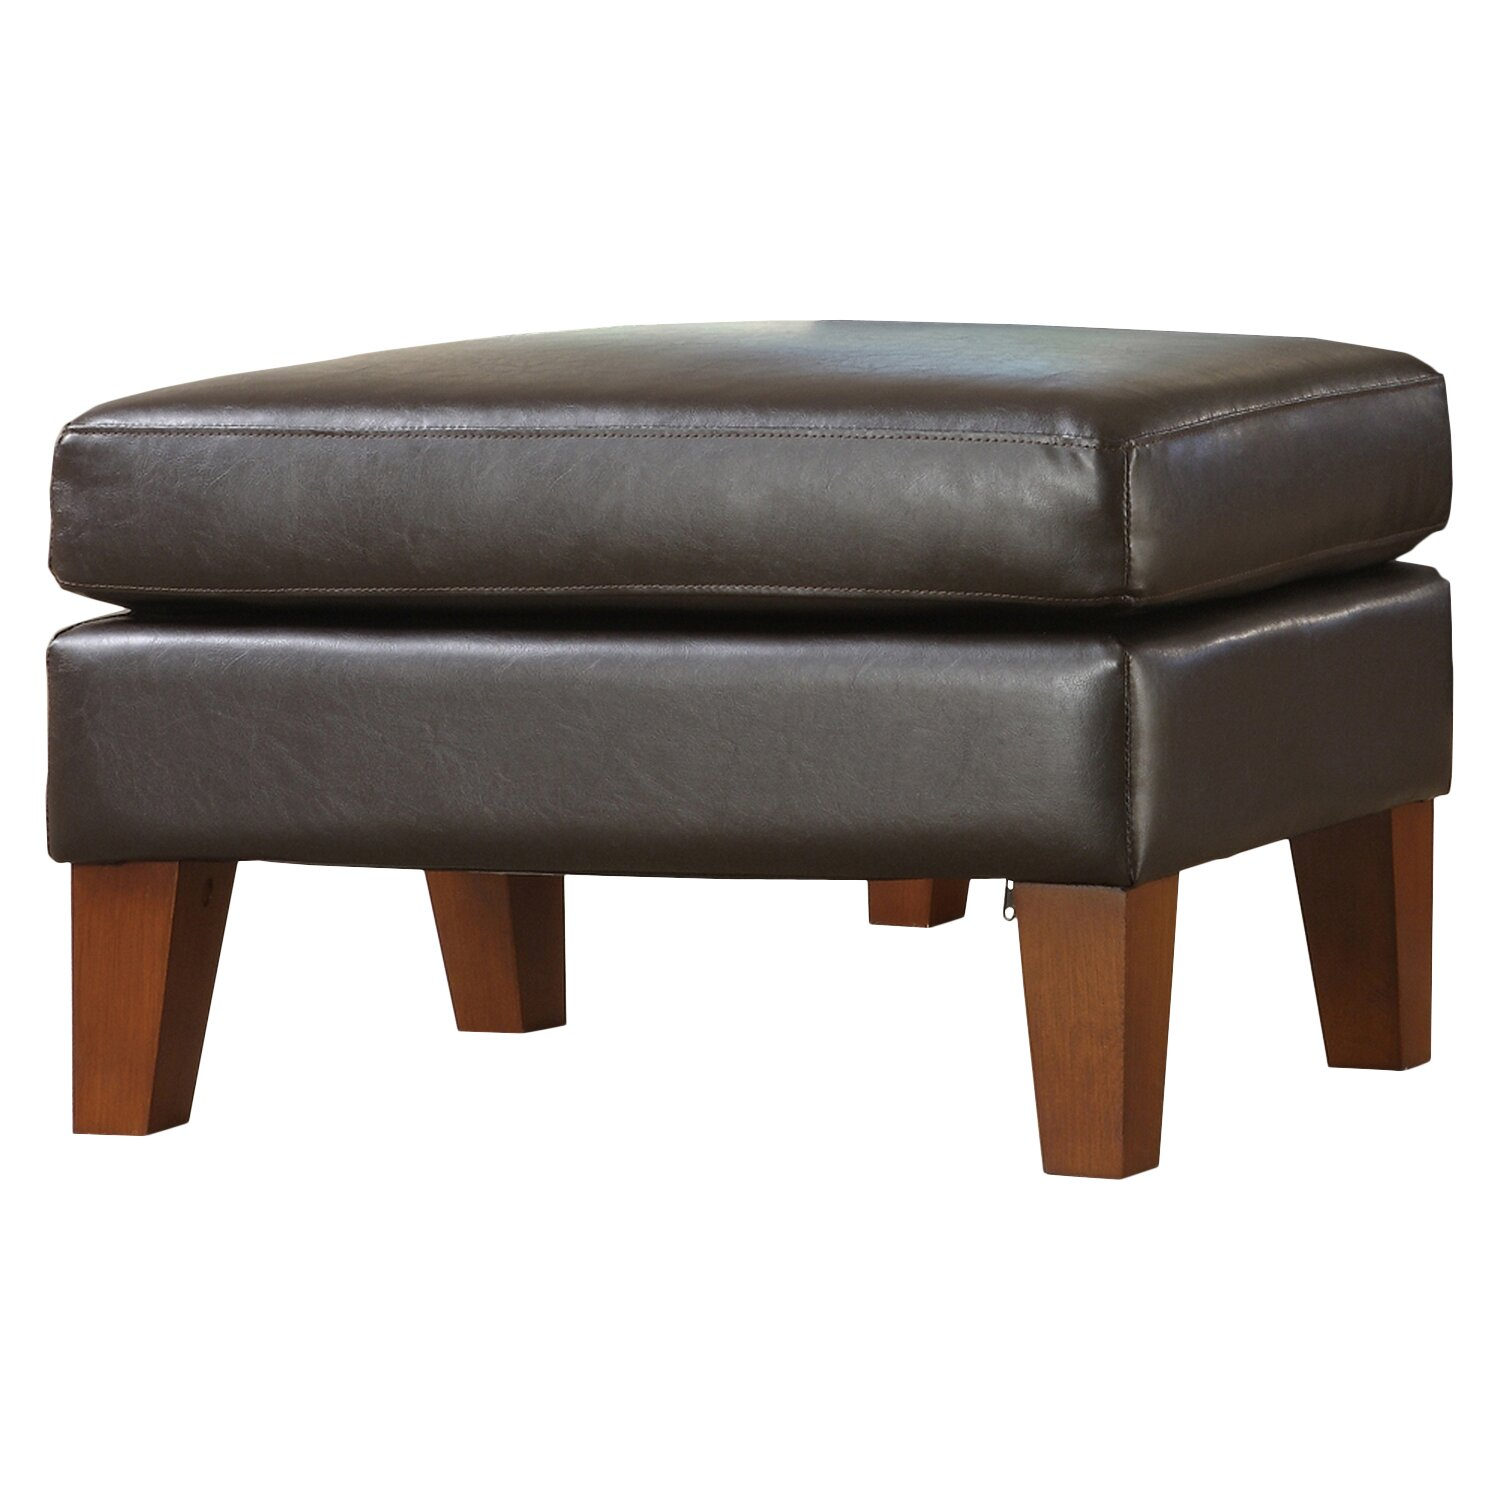 Panama jack furniture reviews stunning panama jack for Furniture jack